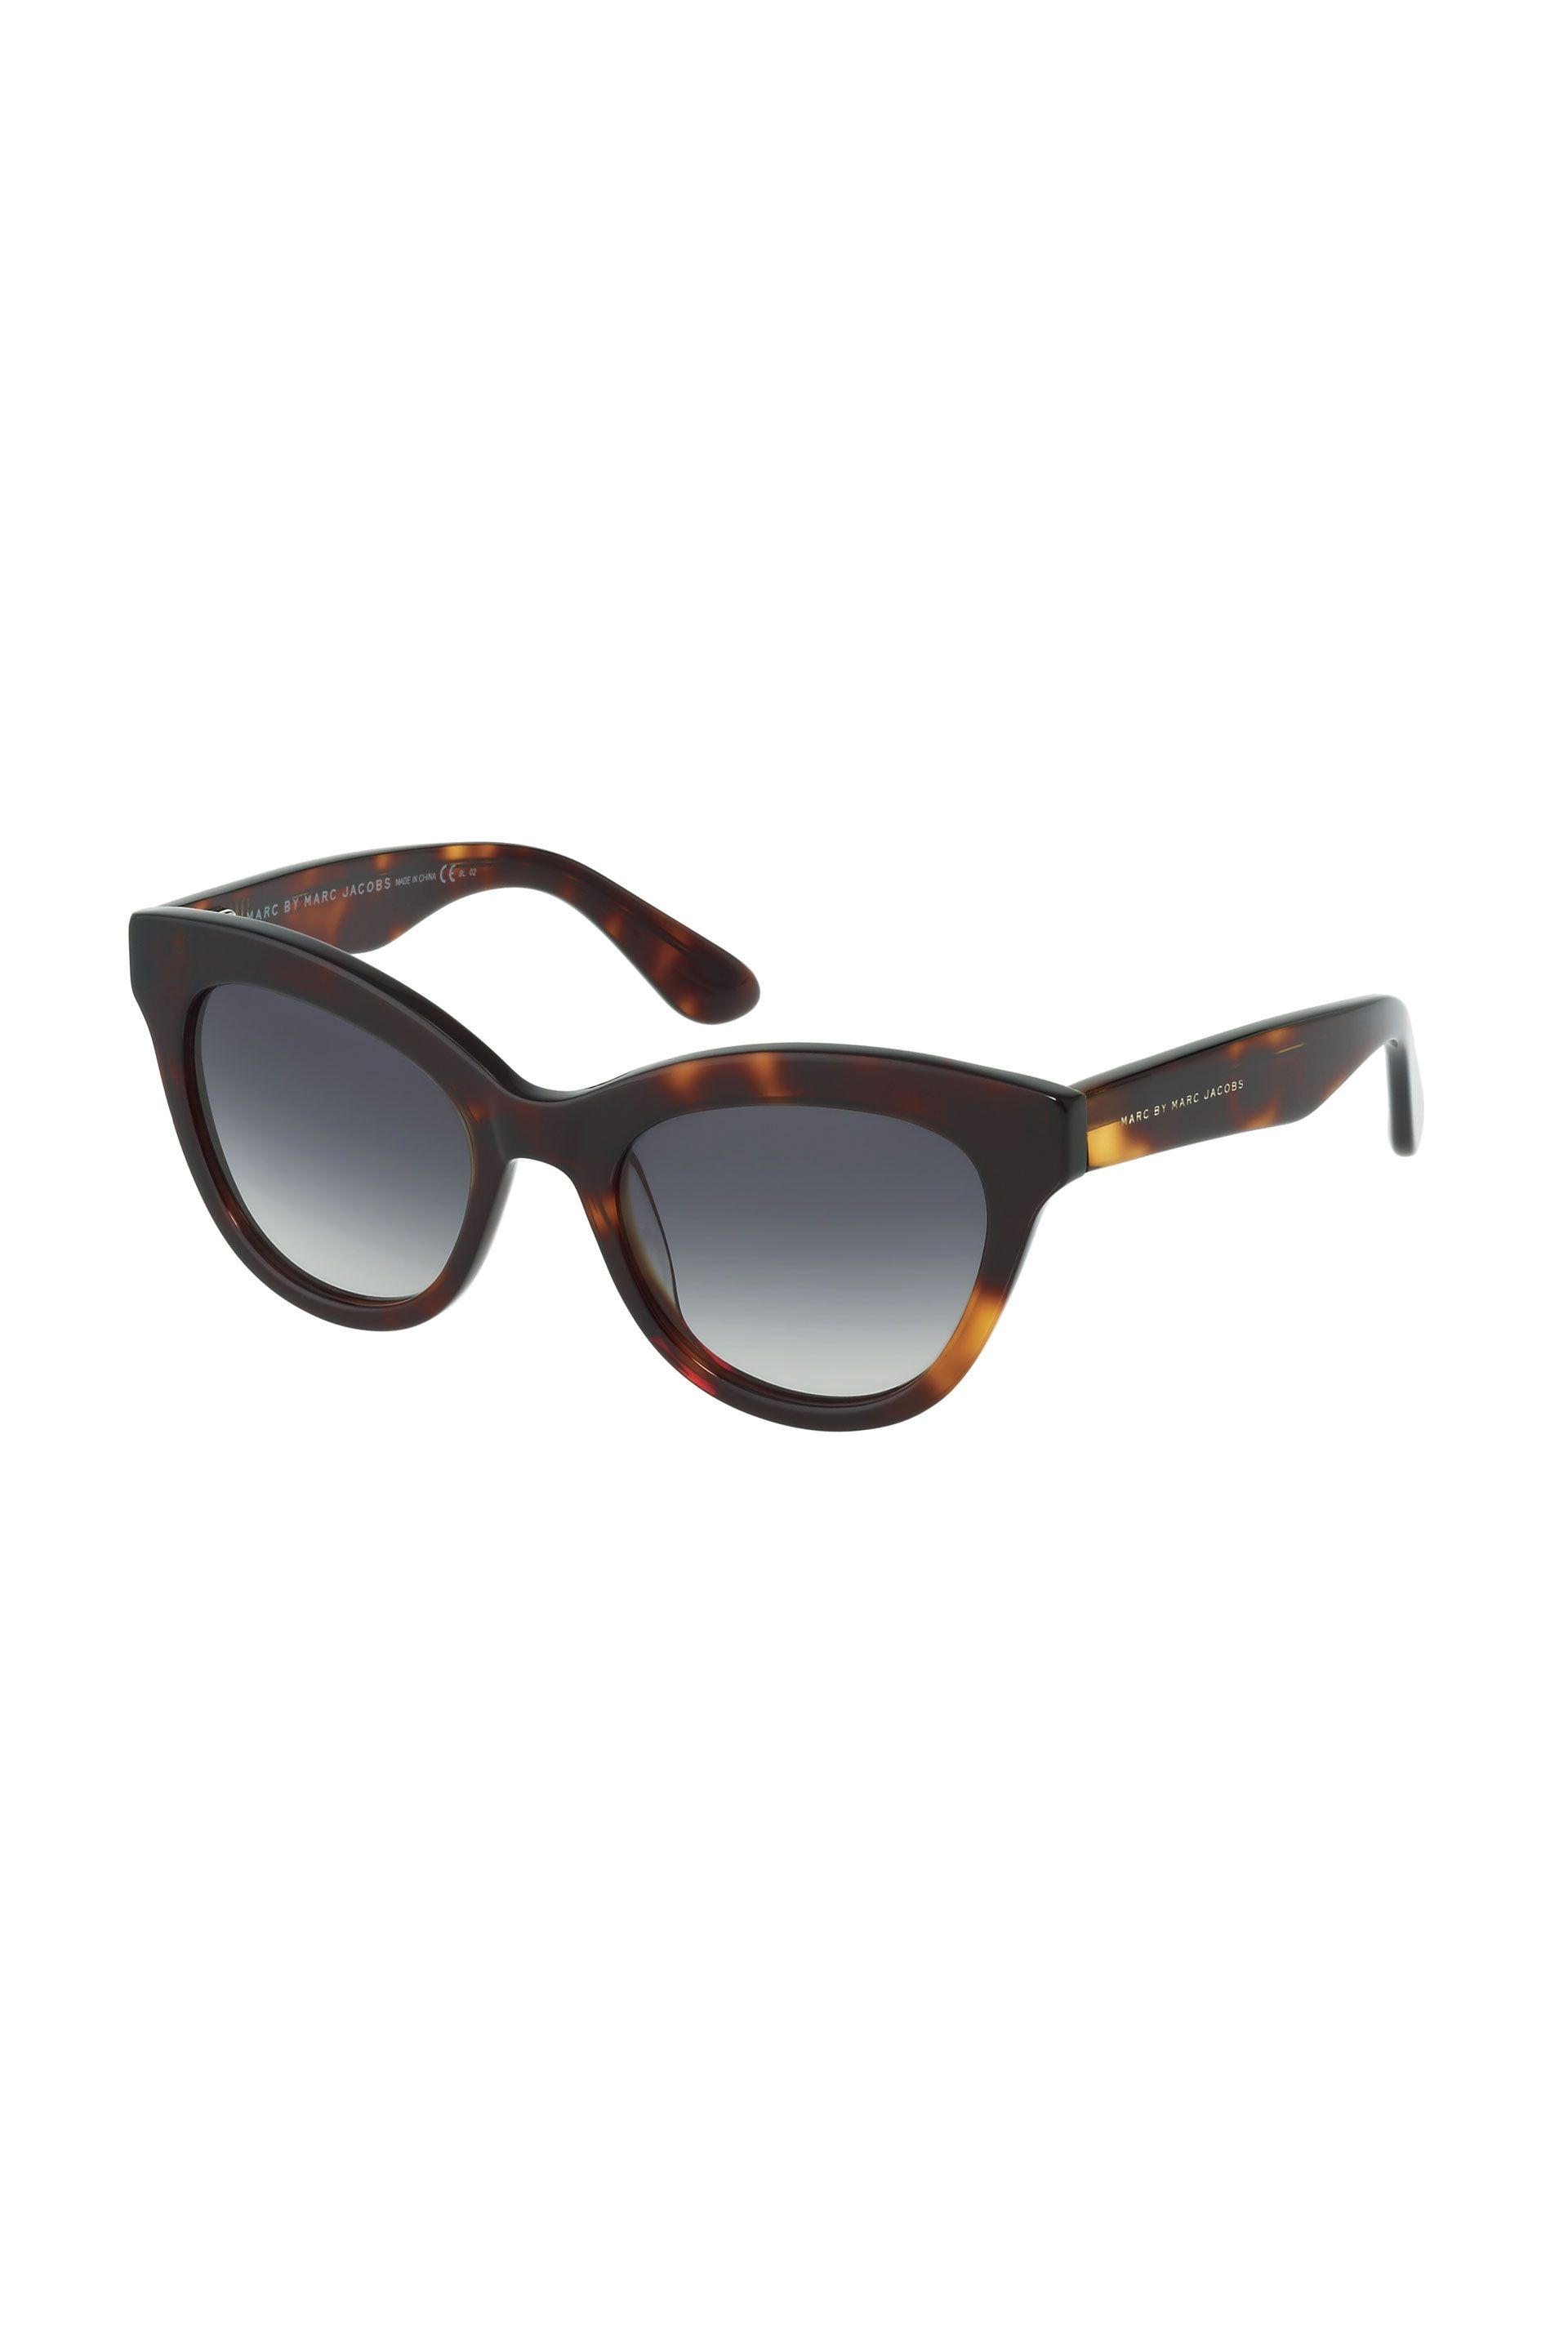 50's-Inspired Marc Jacobs Sunglasses For Summer 2014